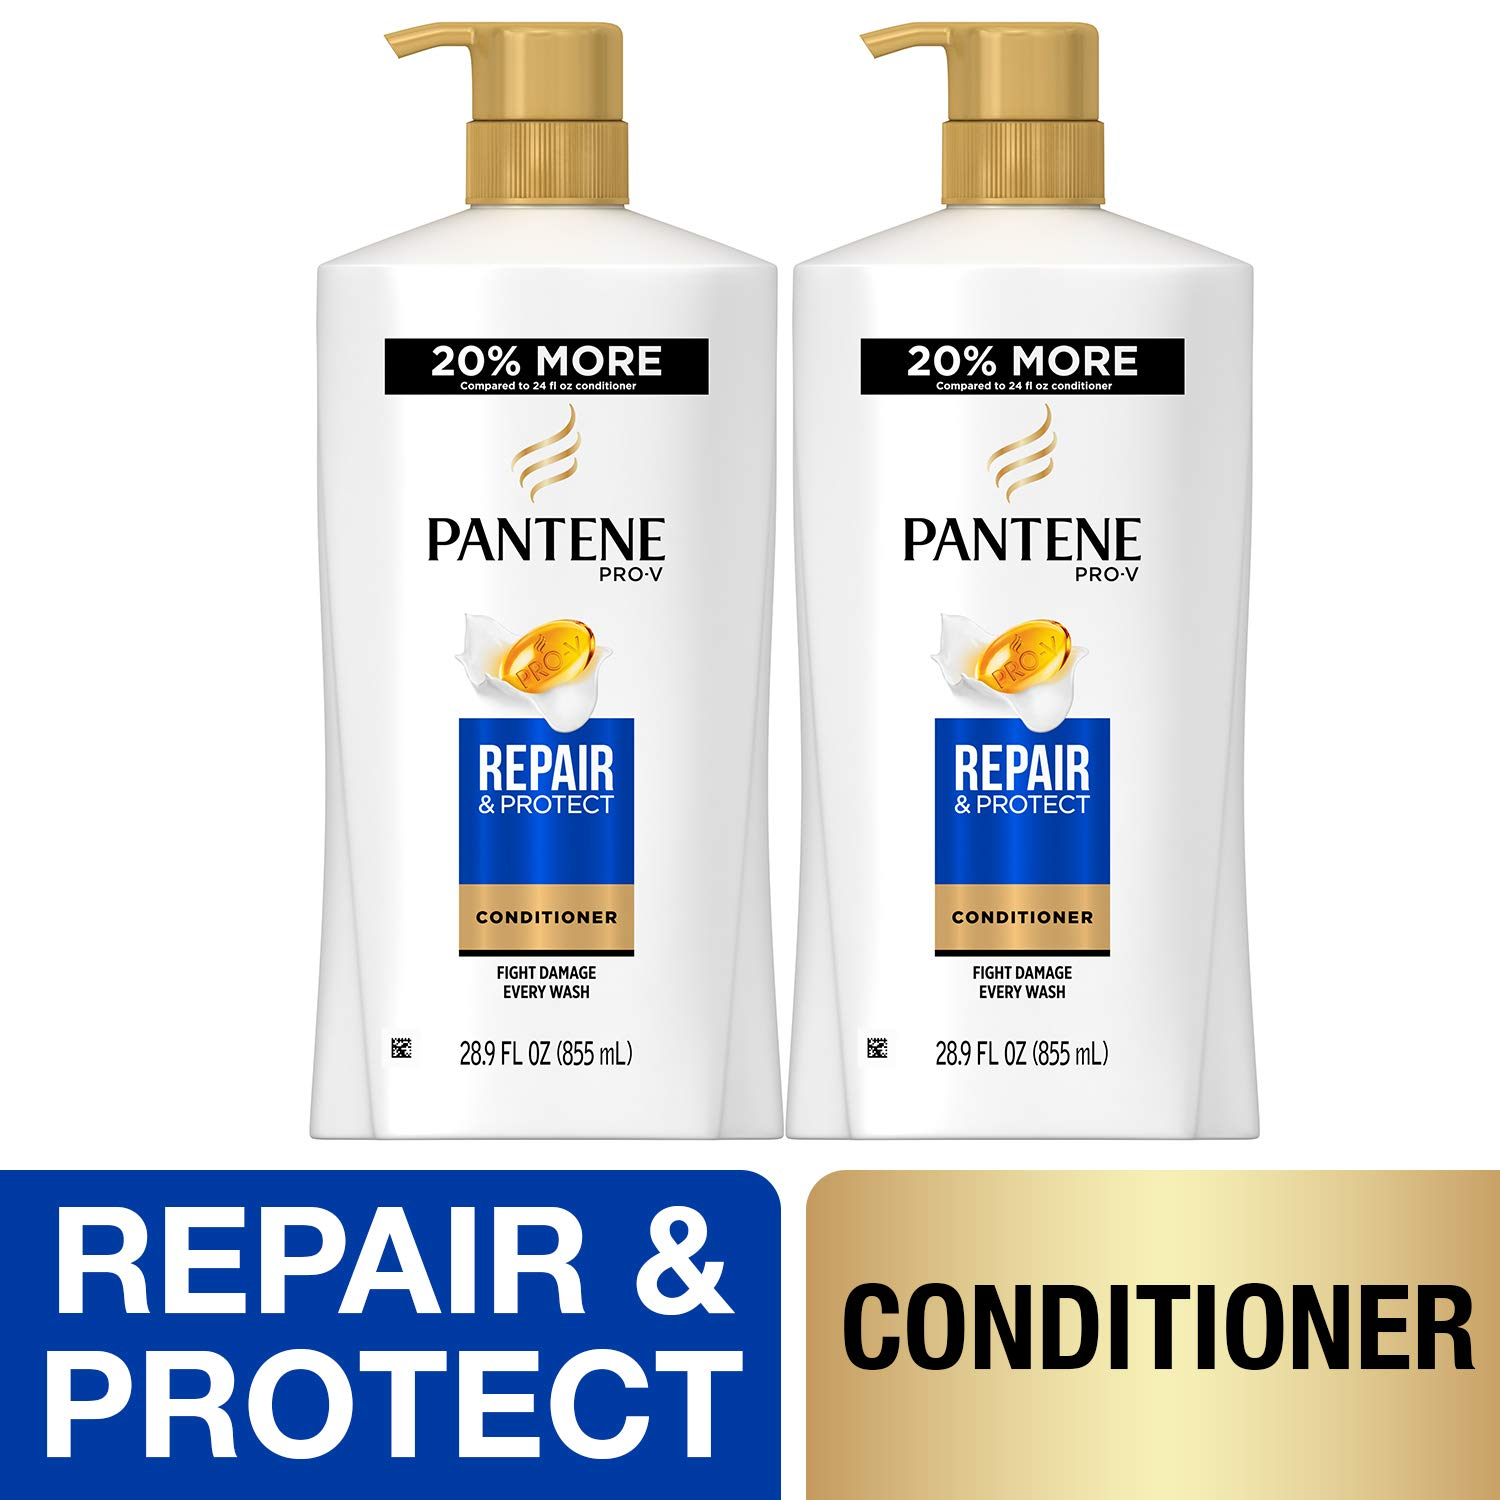 Pantene, Sulfate Free Conditioner, Pro-V Repair and Protect for Damaged Hair, 28.9 fl oz, Twin Pack